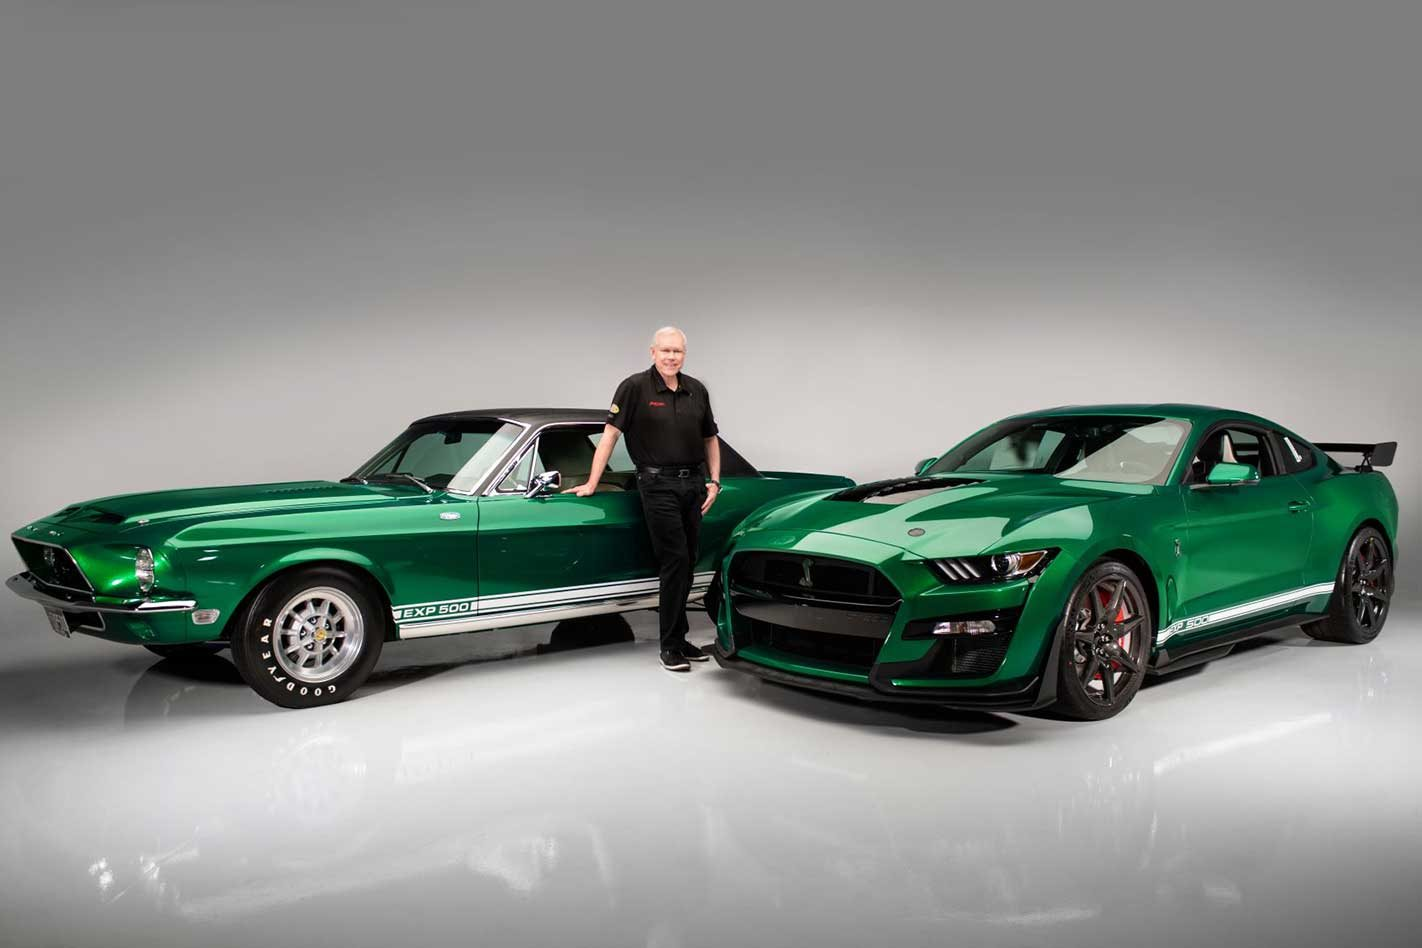 This is the first 2020 Ford Mustang Shelby GT500